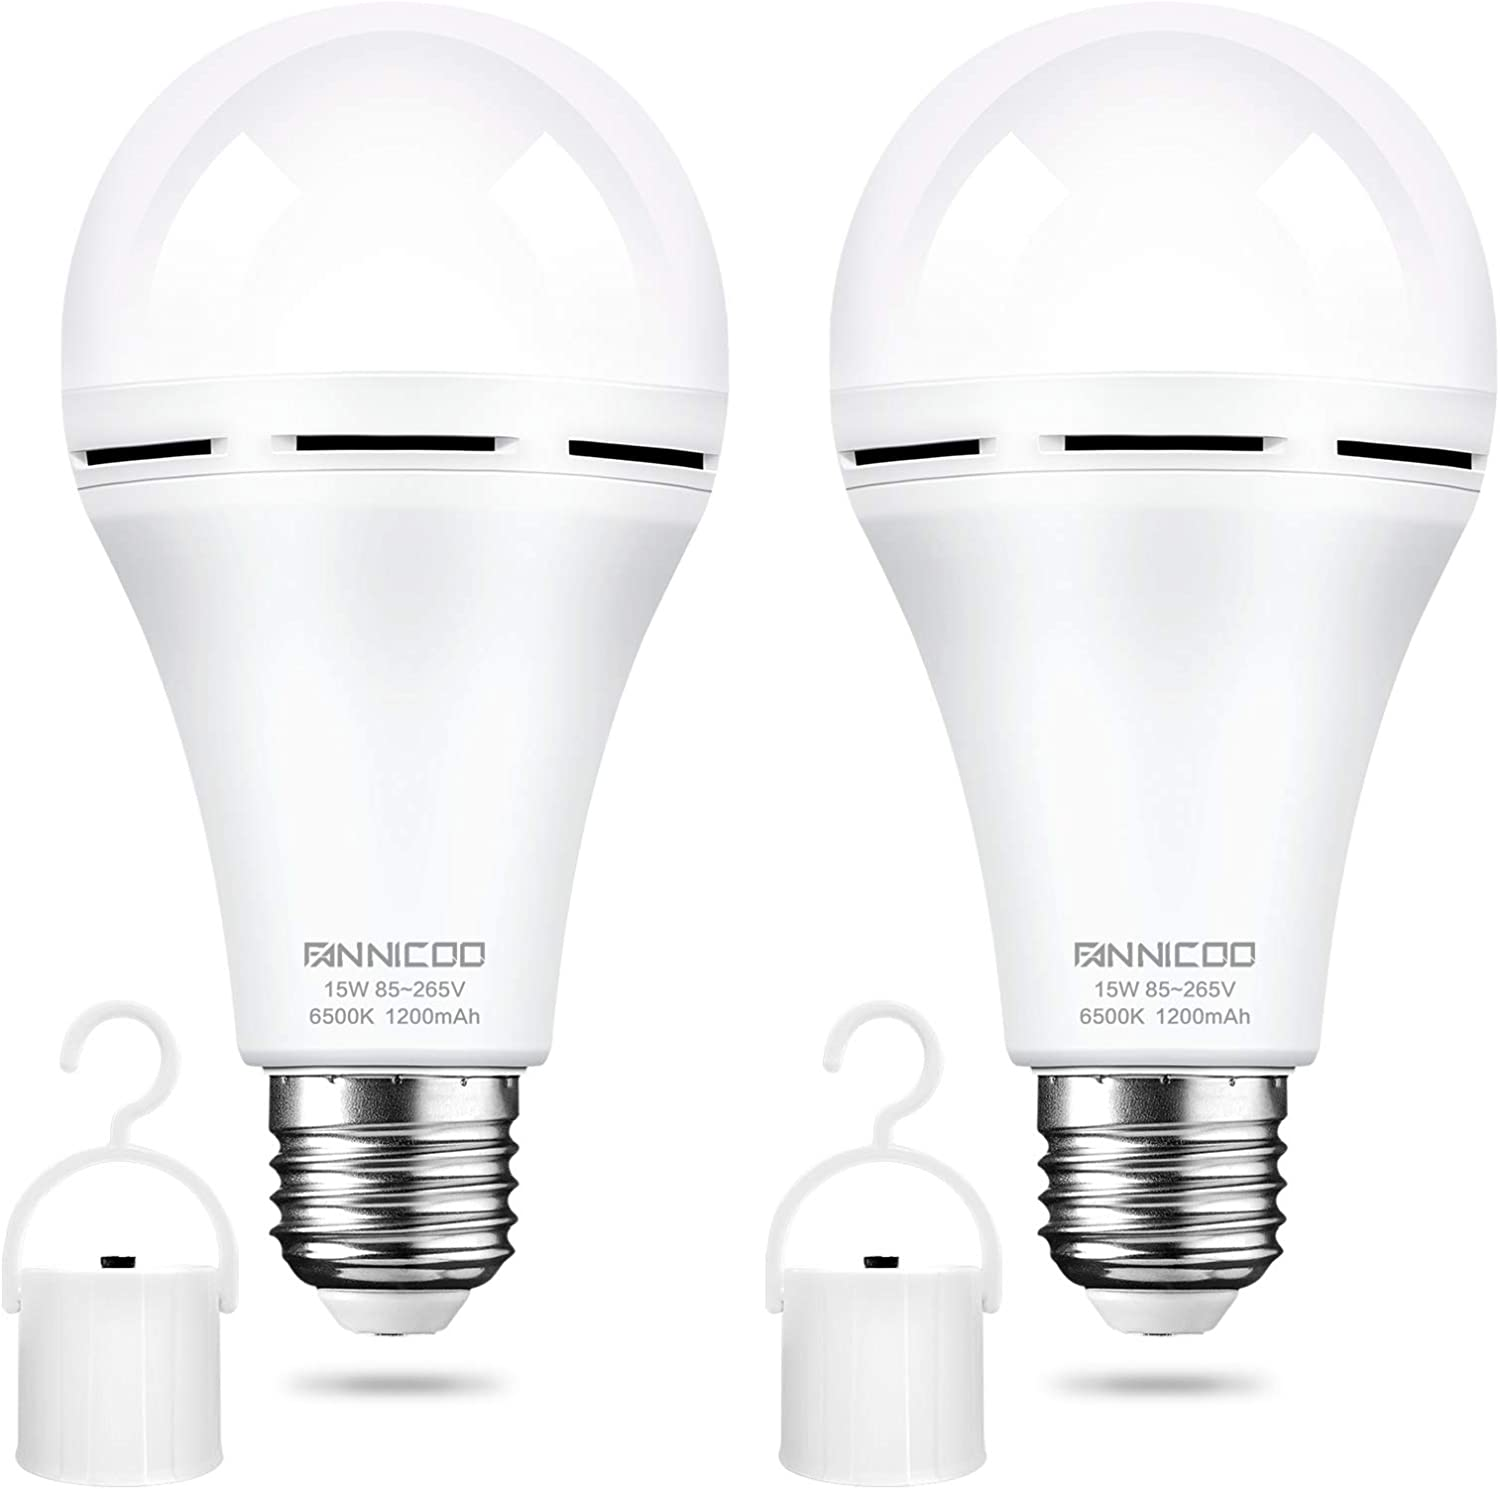 Rechargeable Emergency Light Bulb(2 Pack) Daylight 6500K LED Battery Backup for Power Outage Failure 15W 80W Equivalent 1200mAh with Hook E26/27 Base Light Bulbs Widely Used in Home Camp Hiking